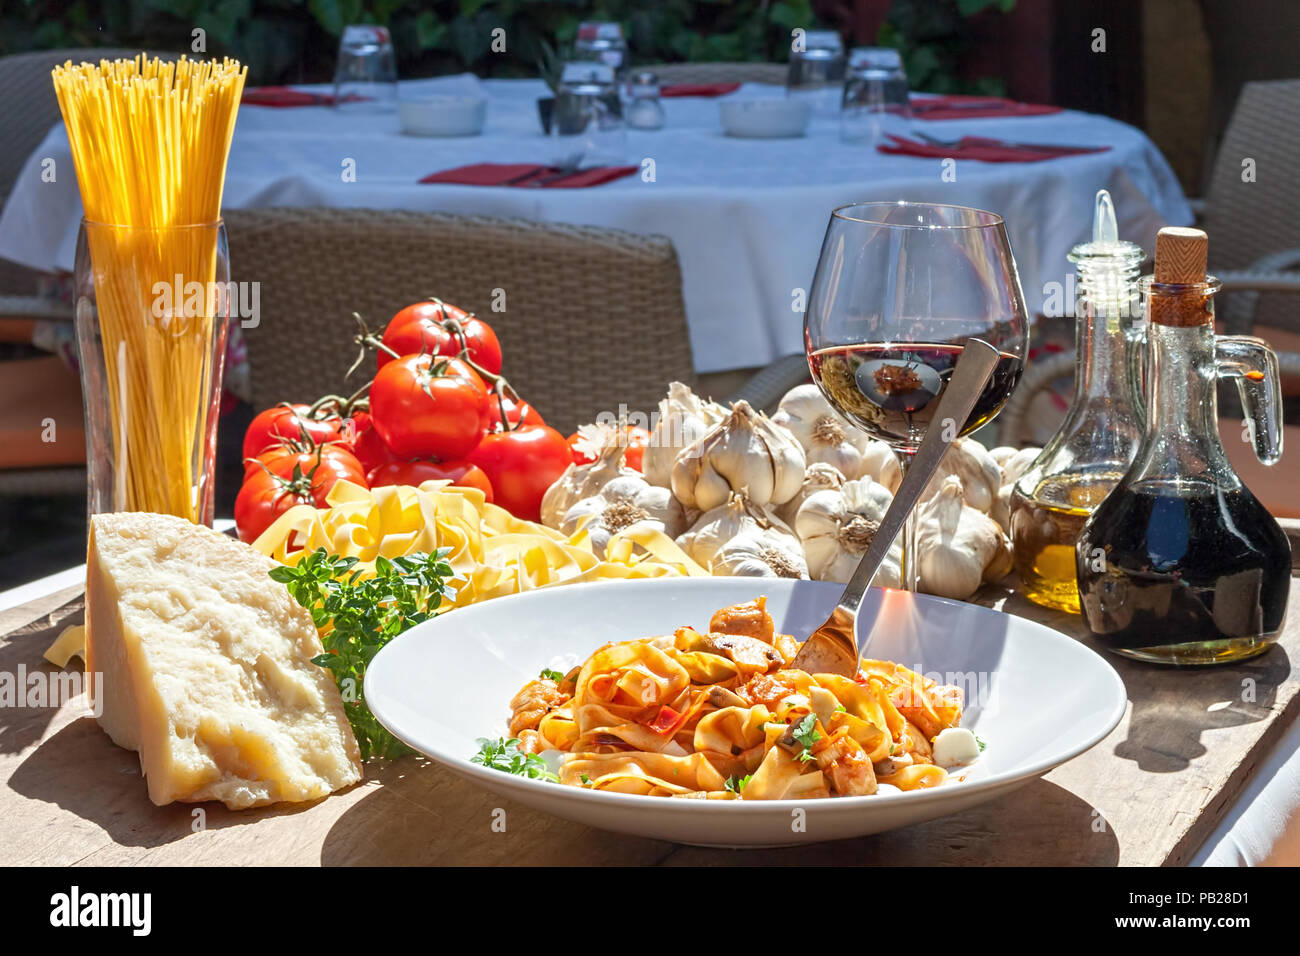 sunlit plate of Italian pasta with basic ingredients around - Stock Image